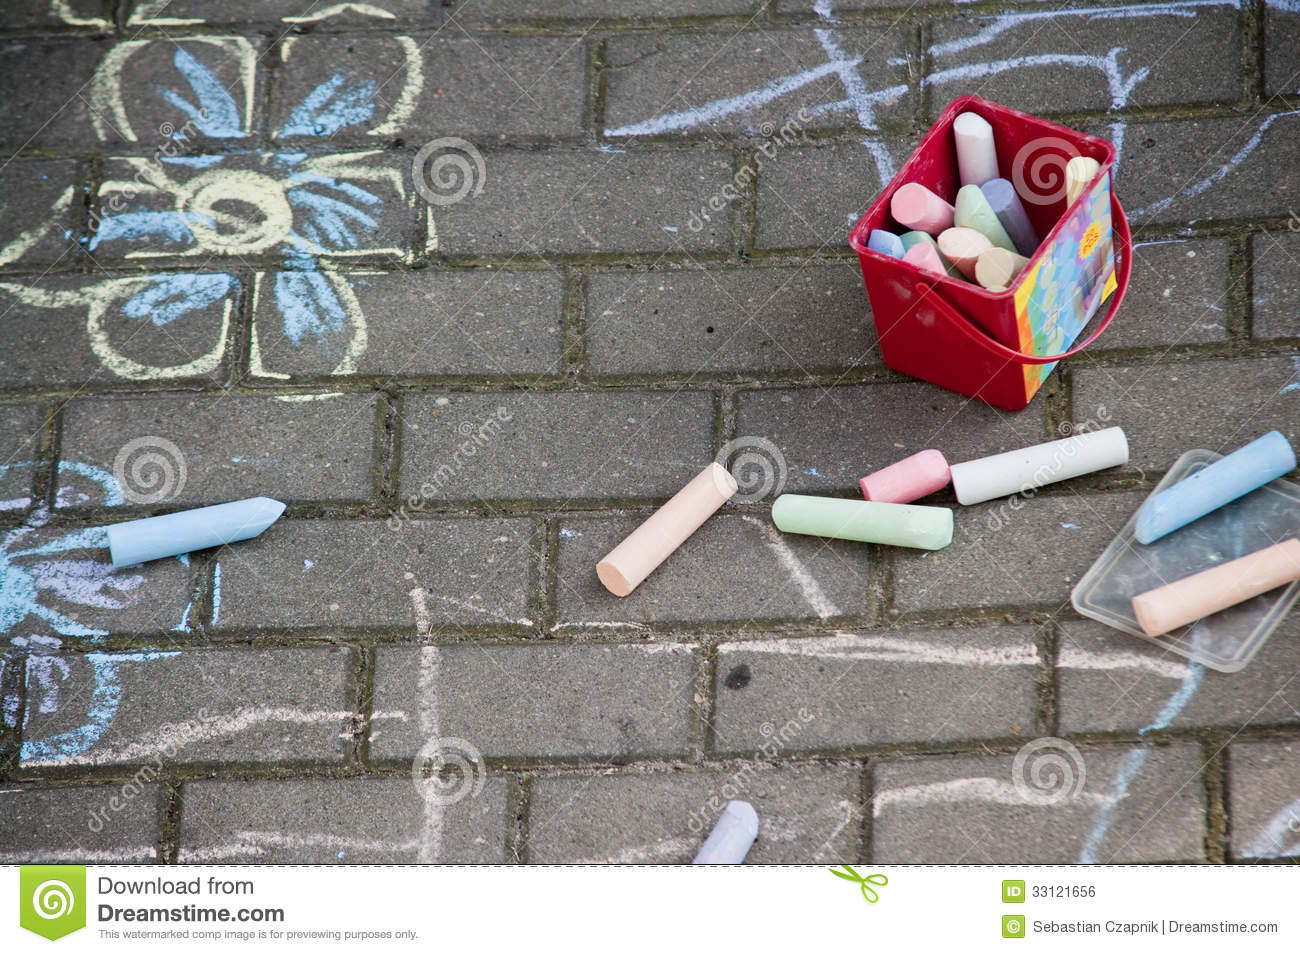 Pavement Chalk Drawings Stock Photo Image Of Flowering 33121656